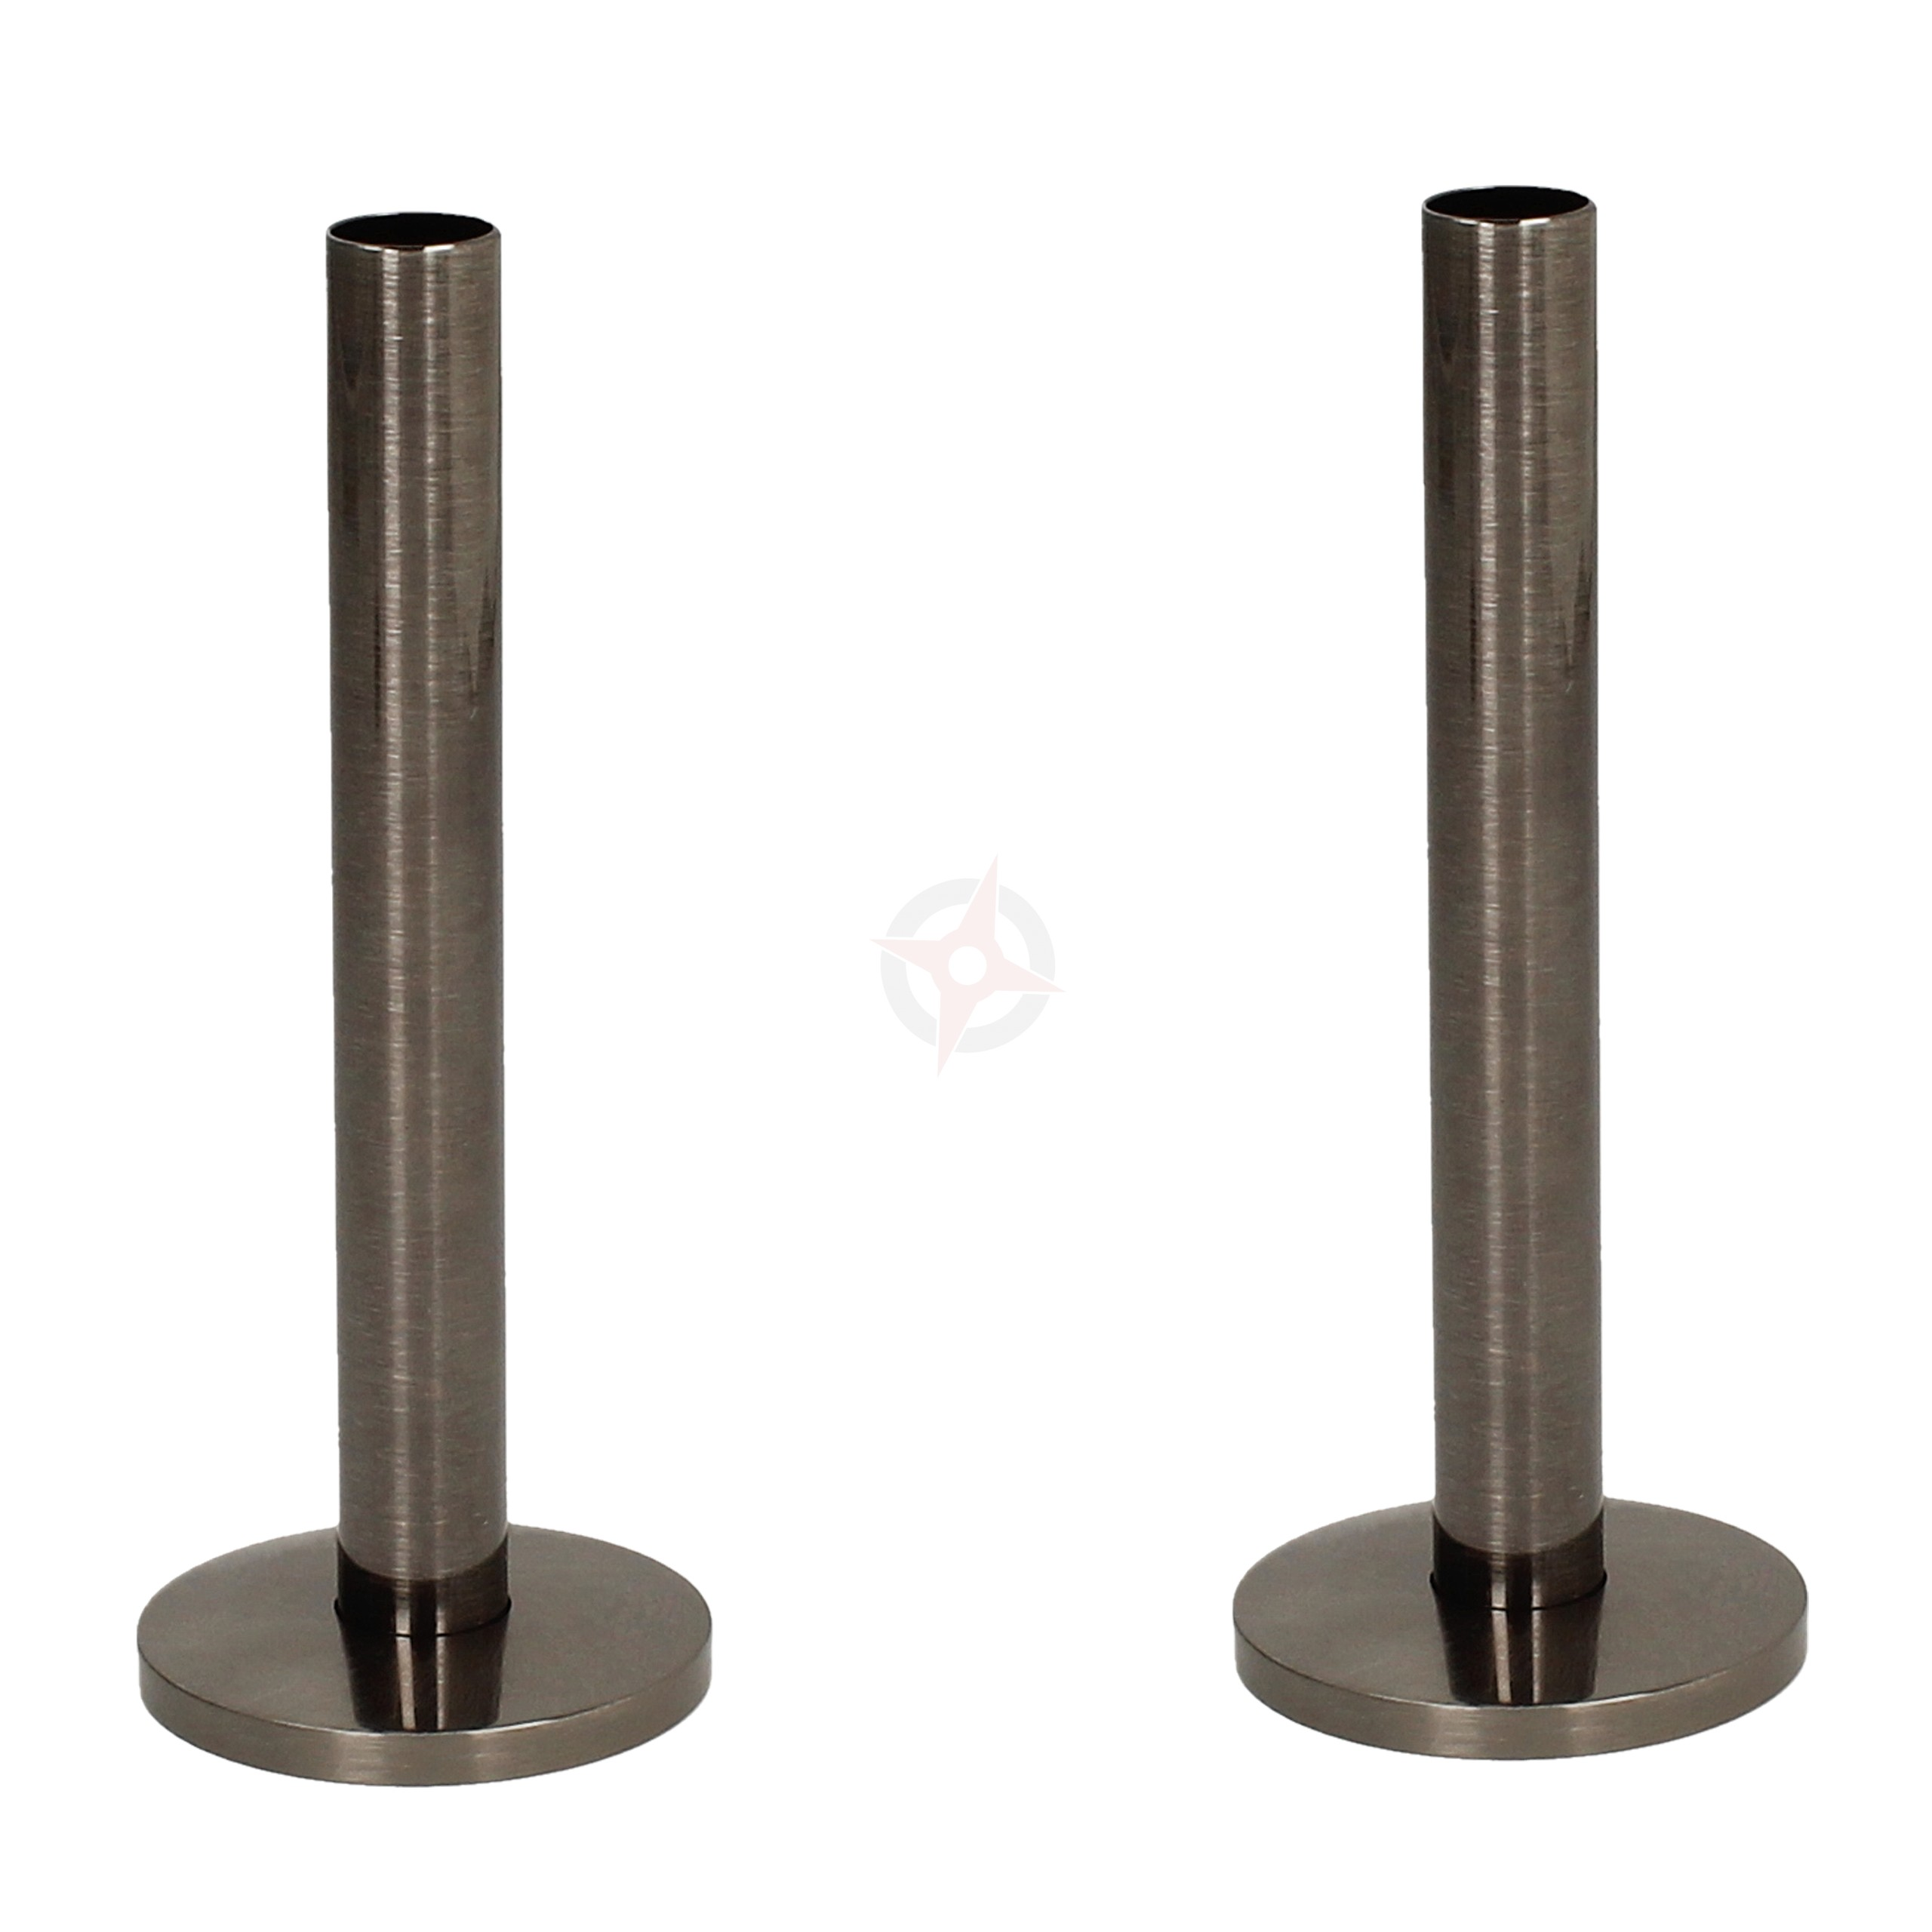 Black Nickel 15mm x 130mm Pipe Tails and Decoration Floor Plates (Pair)